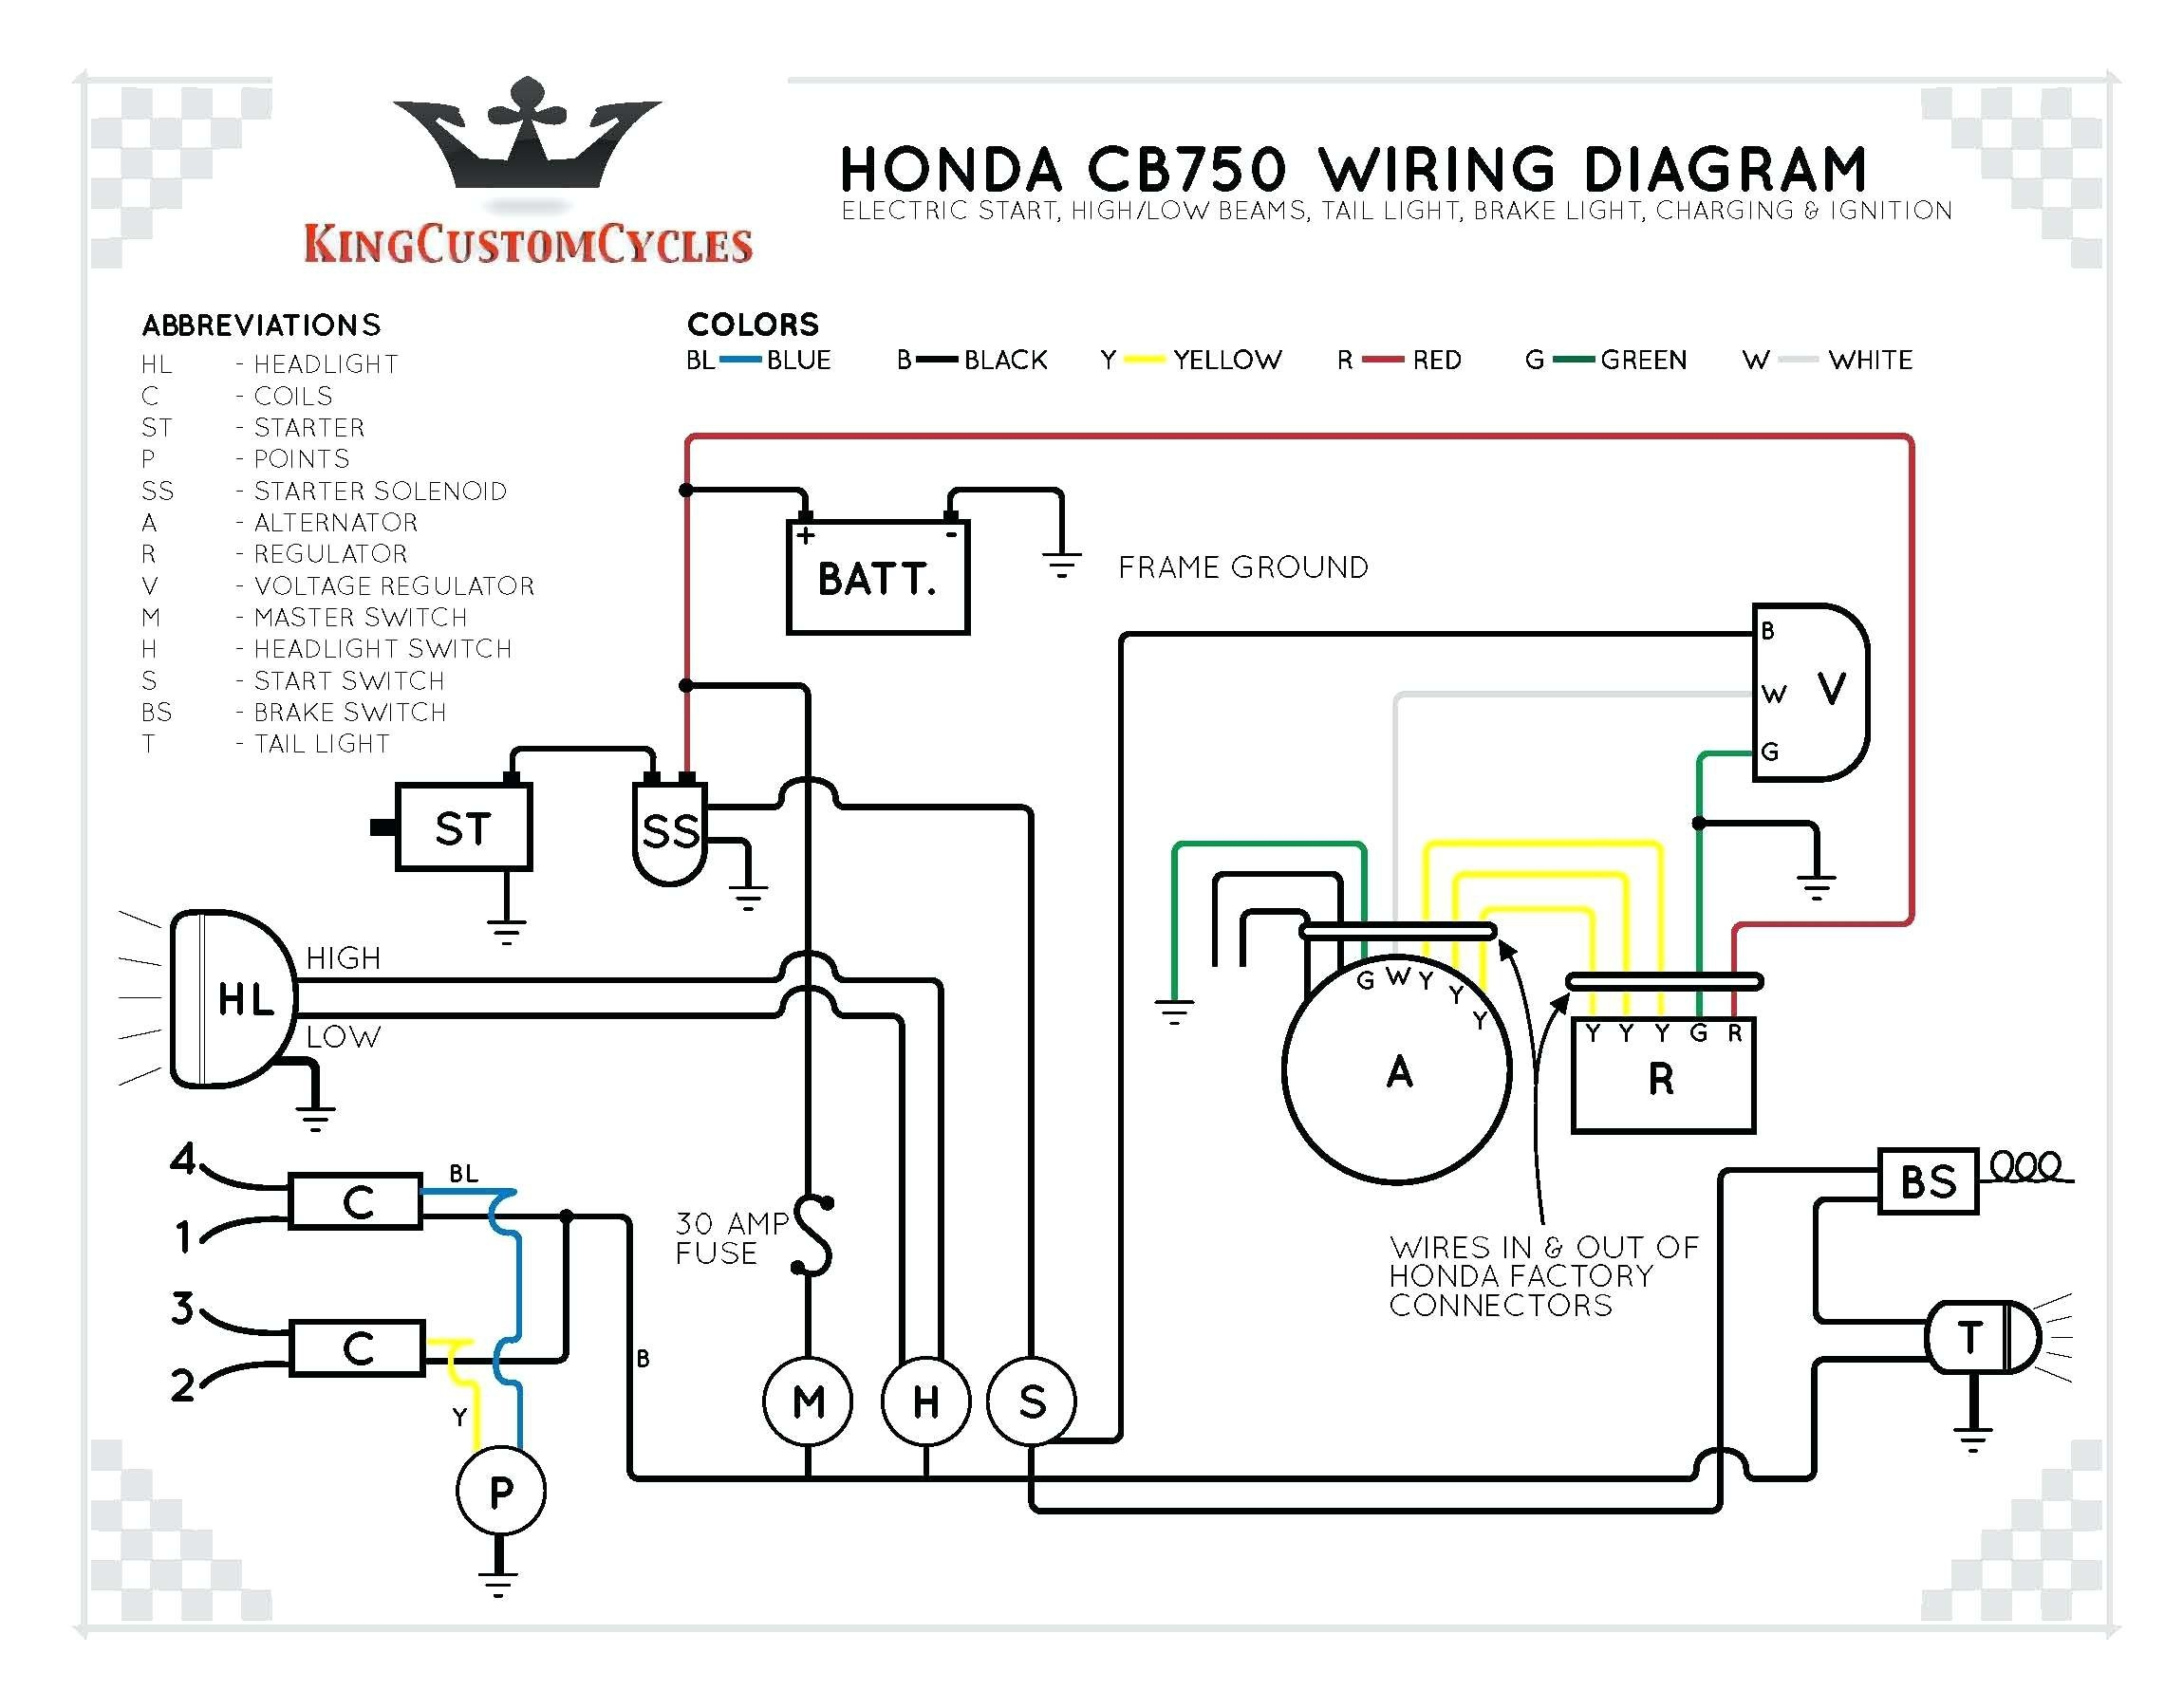 Harley Davidson Voltage Regulator Wiring Diagram | Wiring Schematic on ford f150 headlight wiring diagram, 1988 ford f-150 wiring diagram, 1978 f150 wiring diagram, 1976 harley-davidson sportster wiring diagram, 1983 f250 voltage regulator diagram, 1990 ford alternator wiring diagram, harley-davidson starter diagram, harley softail battery wiring, 79 ford f-150 wire diagram, harley voltage regulator, 1974 ford f100 ranger fuse diagram, hd fld electrical diagram,